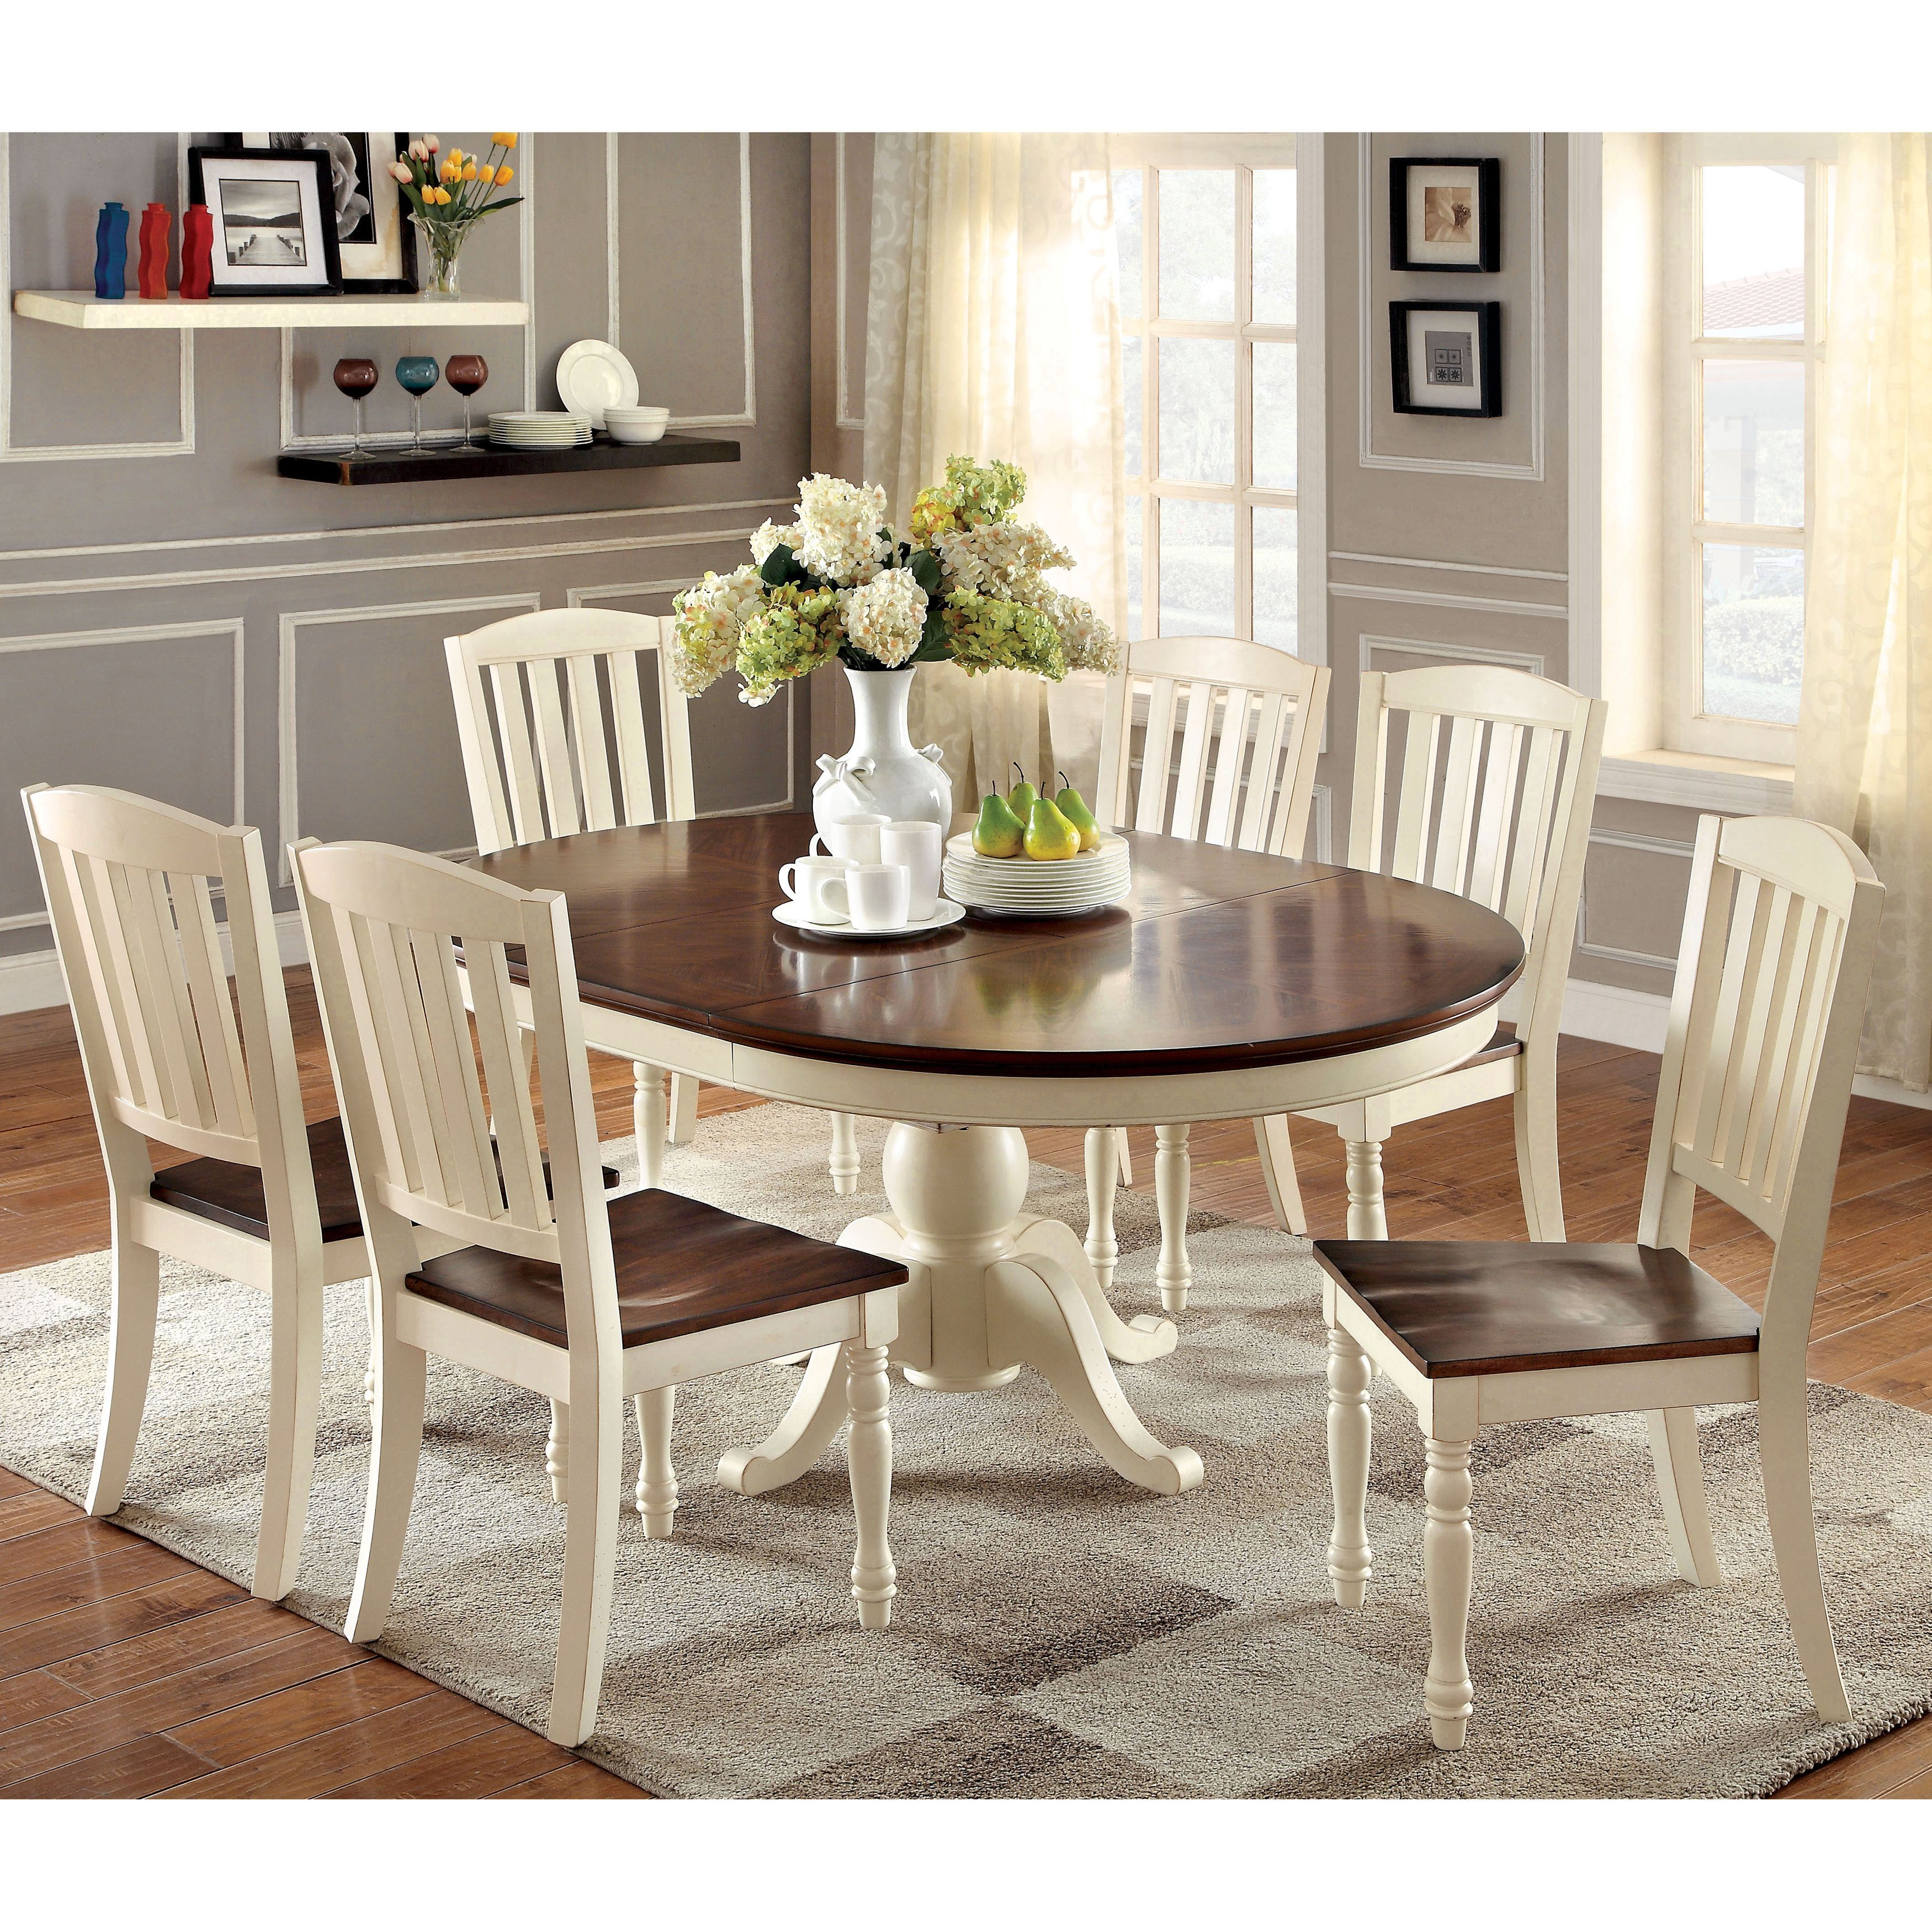 Add brightness to your kitchen or dining area with the for 2 tone dining room sets